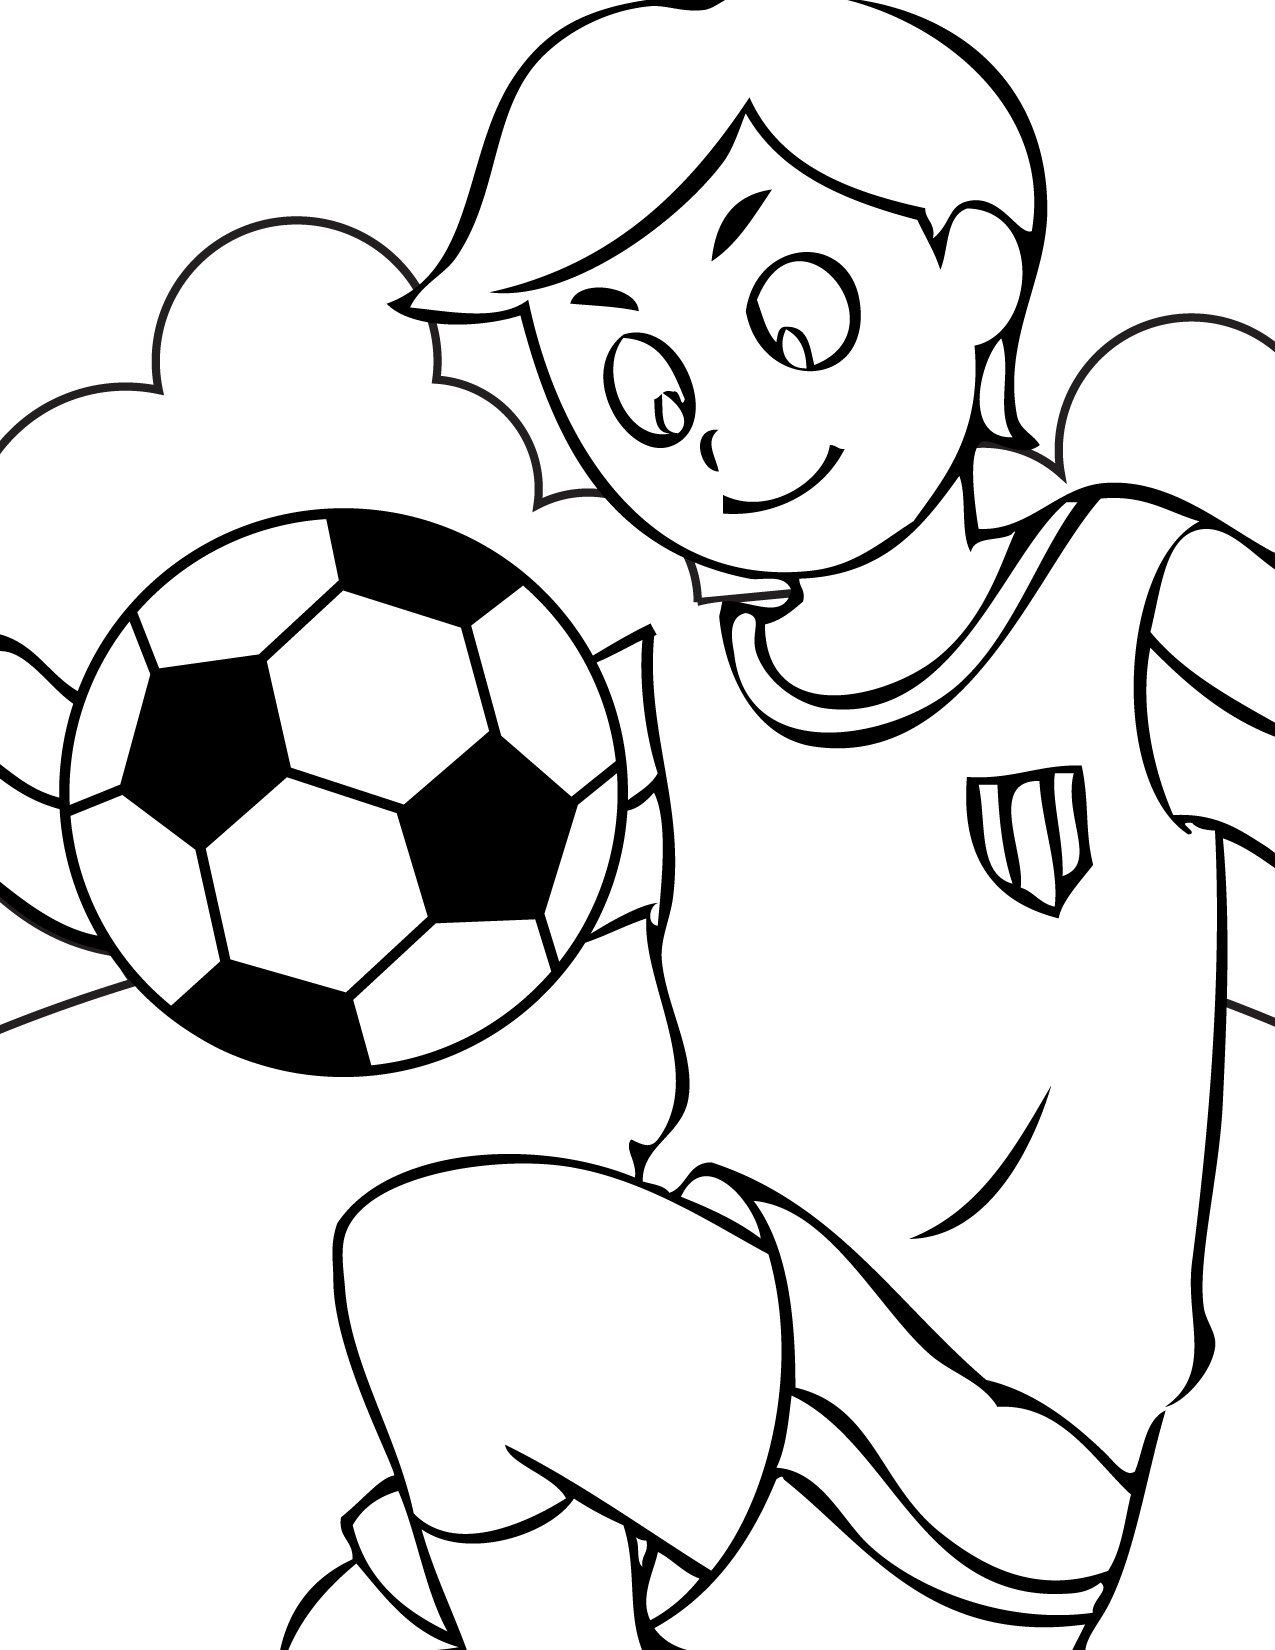 Coloring Pages For Youth : Soccer coloring pages kids